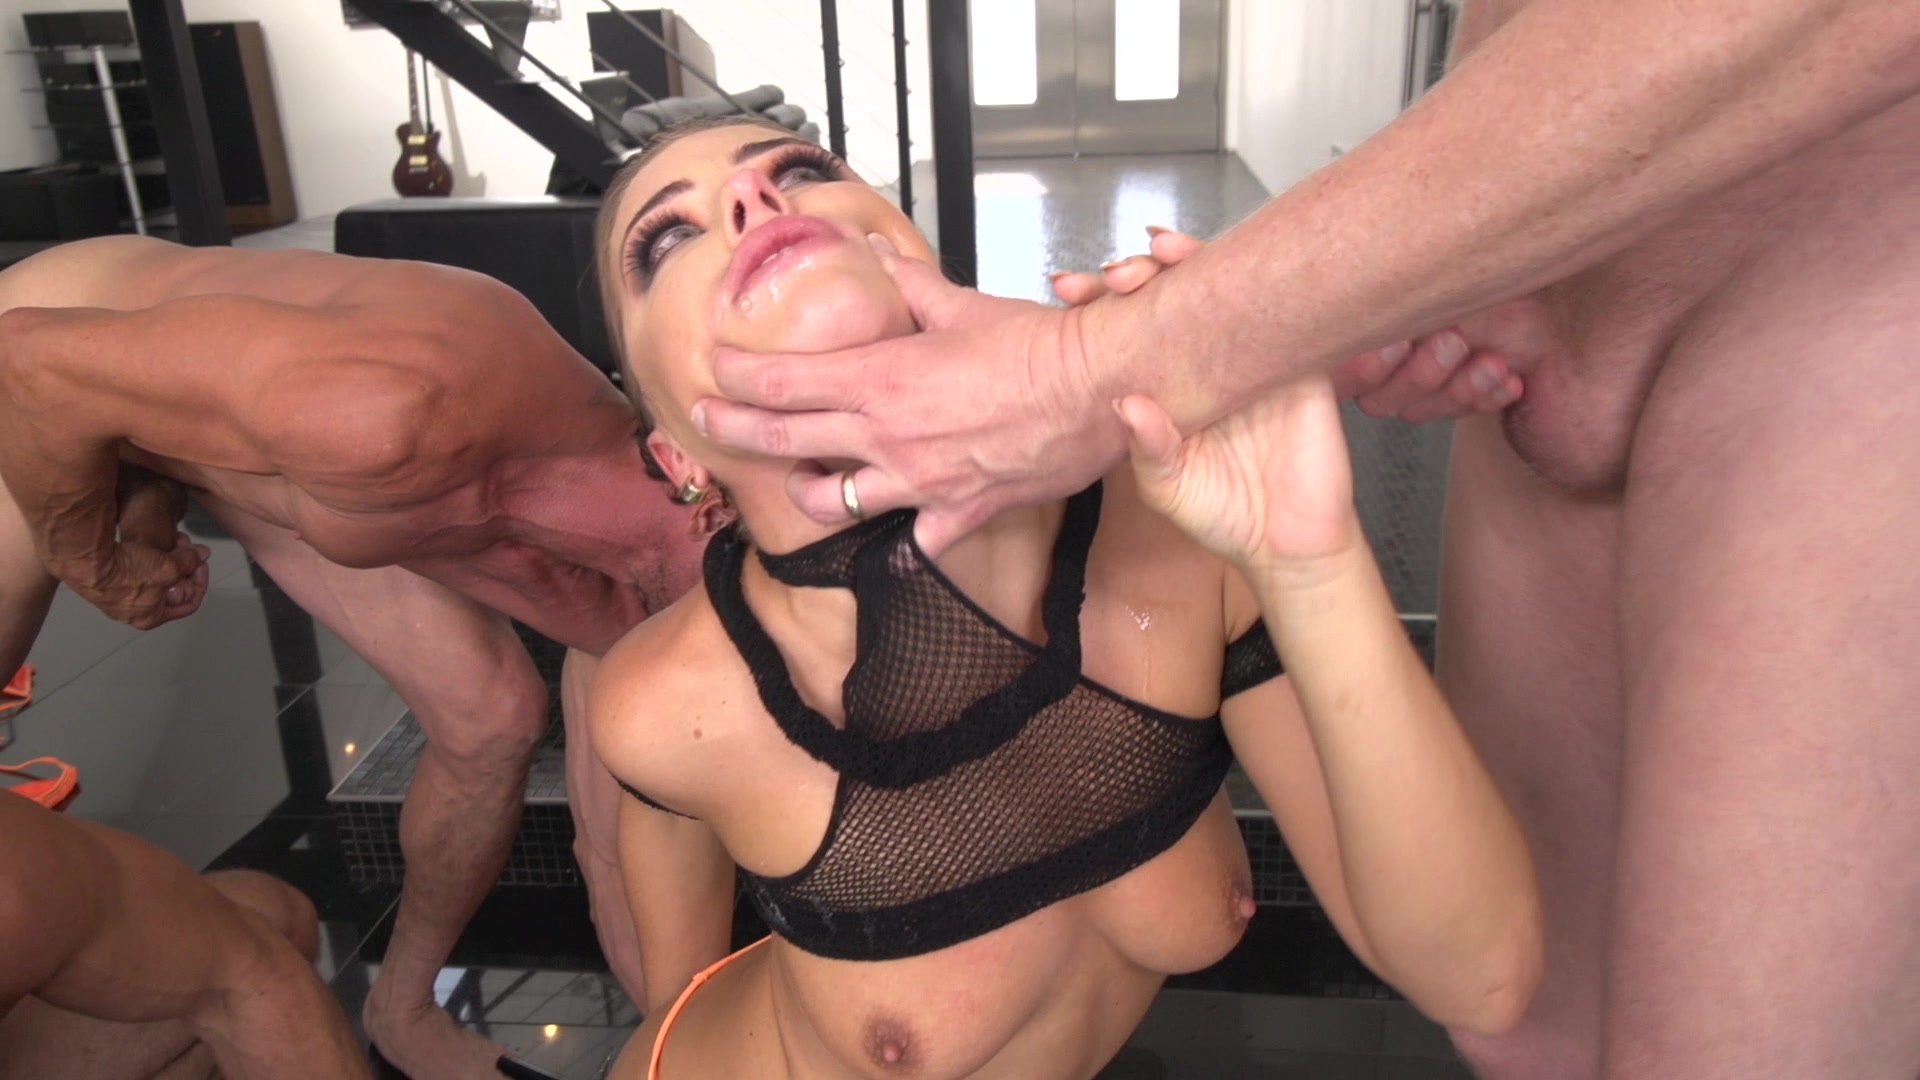 Scene with Adriana Chechik - image 5 out of 20